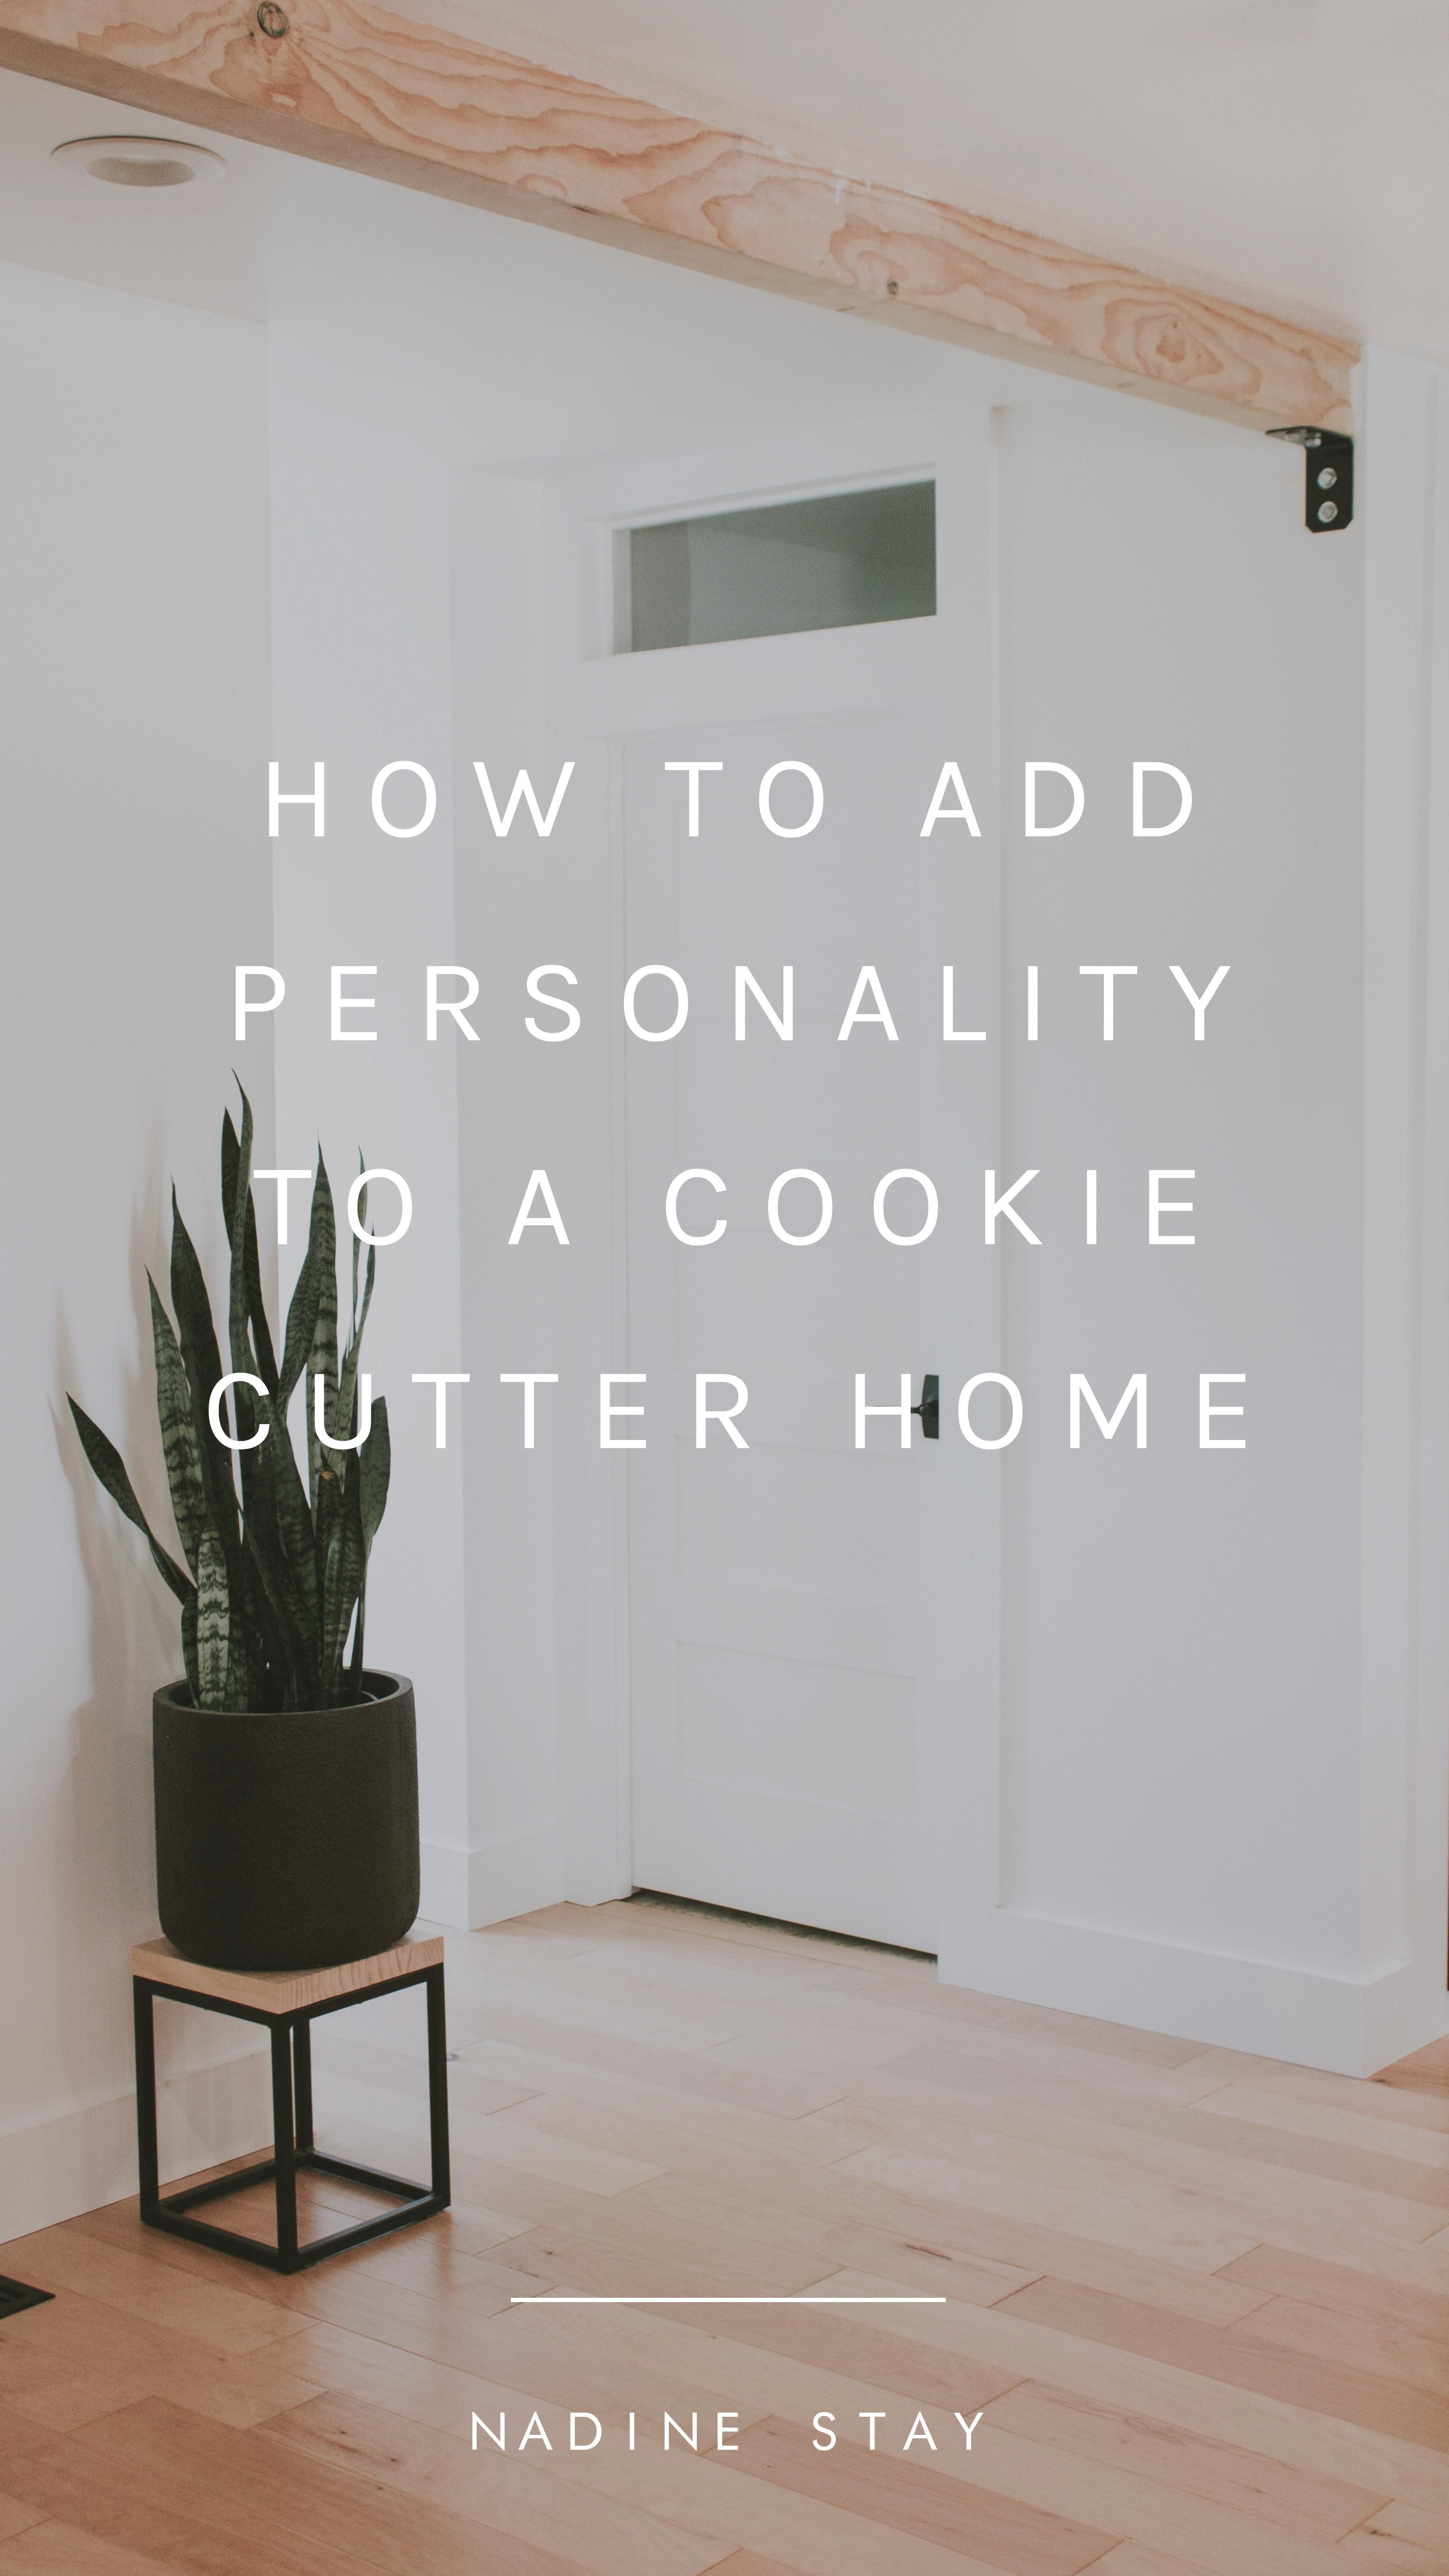 How To Decorate Your Home With Personality: 12 EXAMPLES OF HOW TO ADD PERSONALITY TO A COOKIE CUTTER HOME